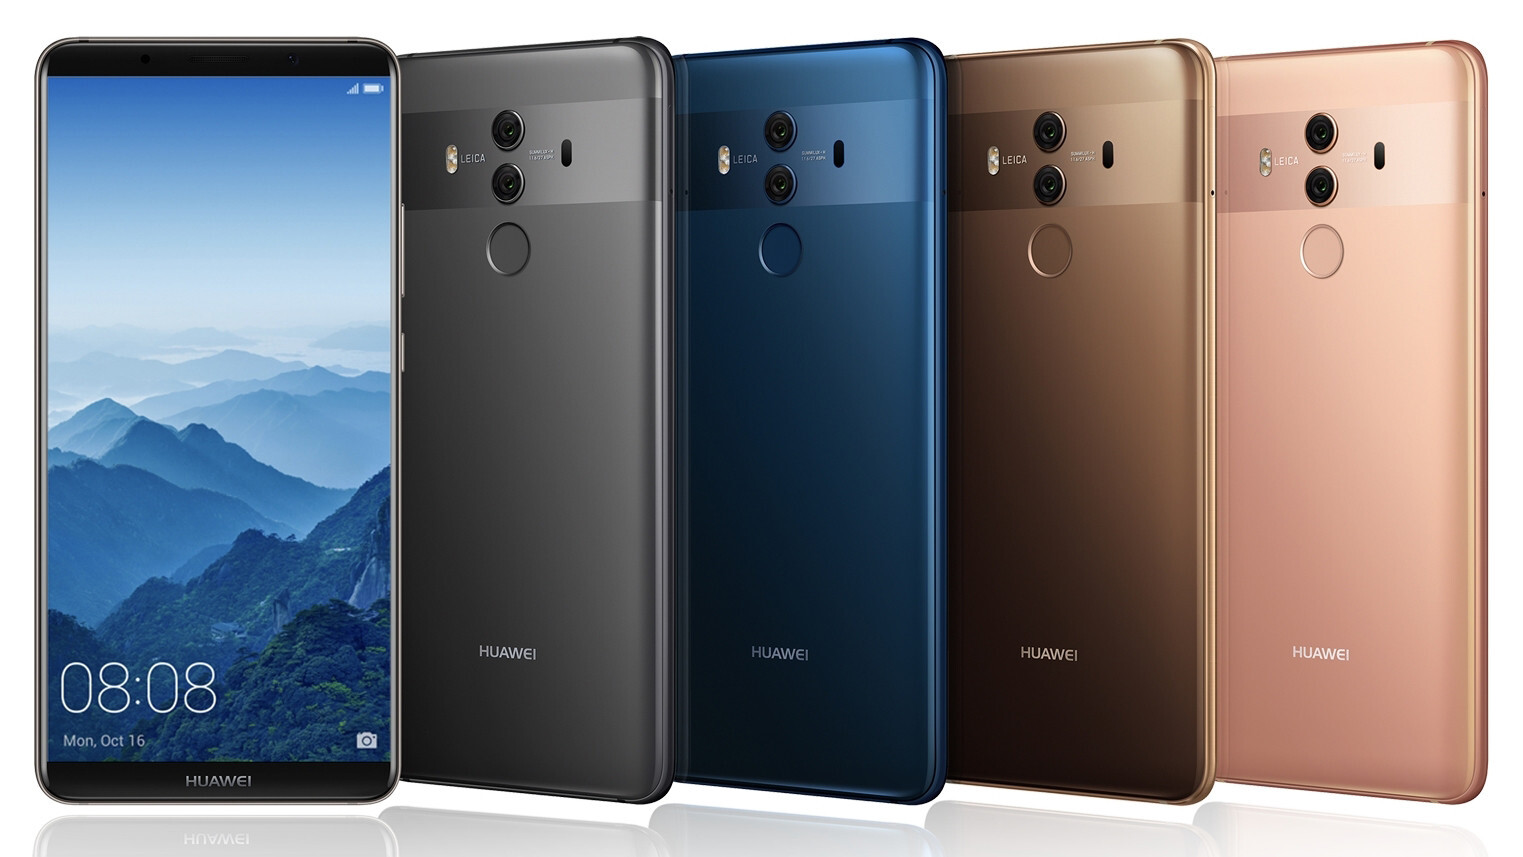 Huawei Mate 10 Pro goes all-in on AI, smart working